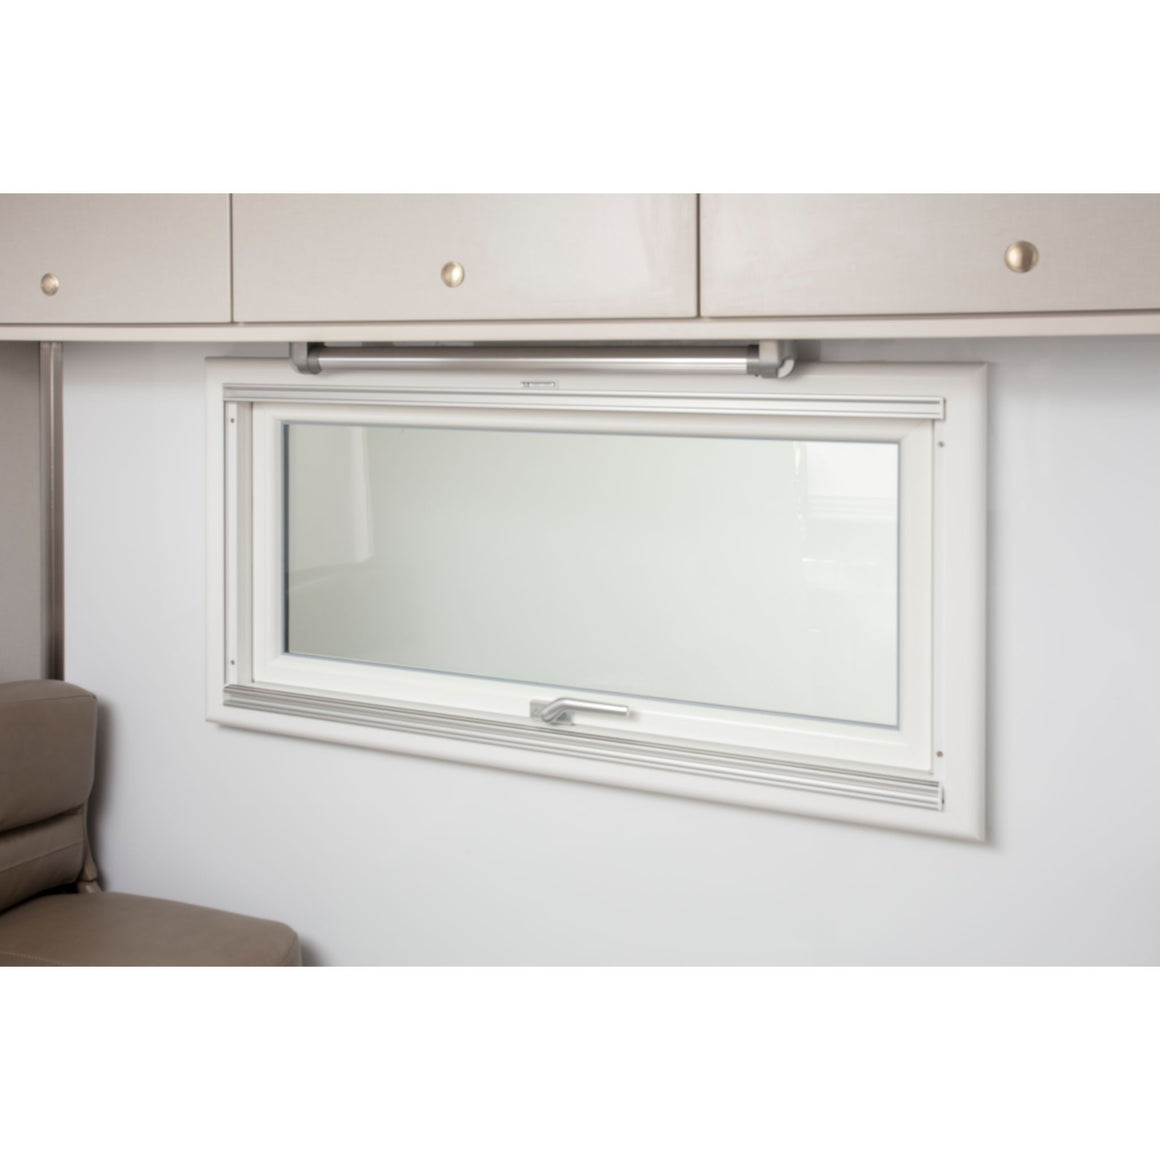 Armor Vision Dual Pane Glass Windows